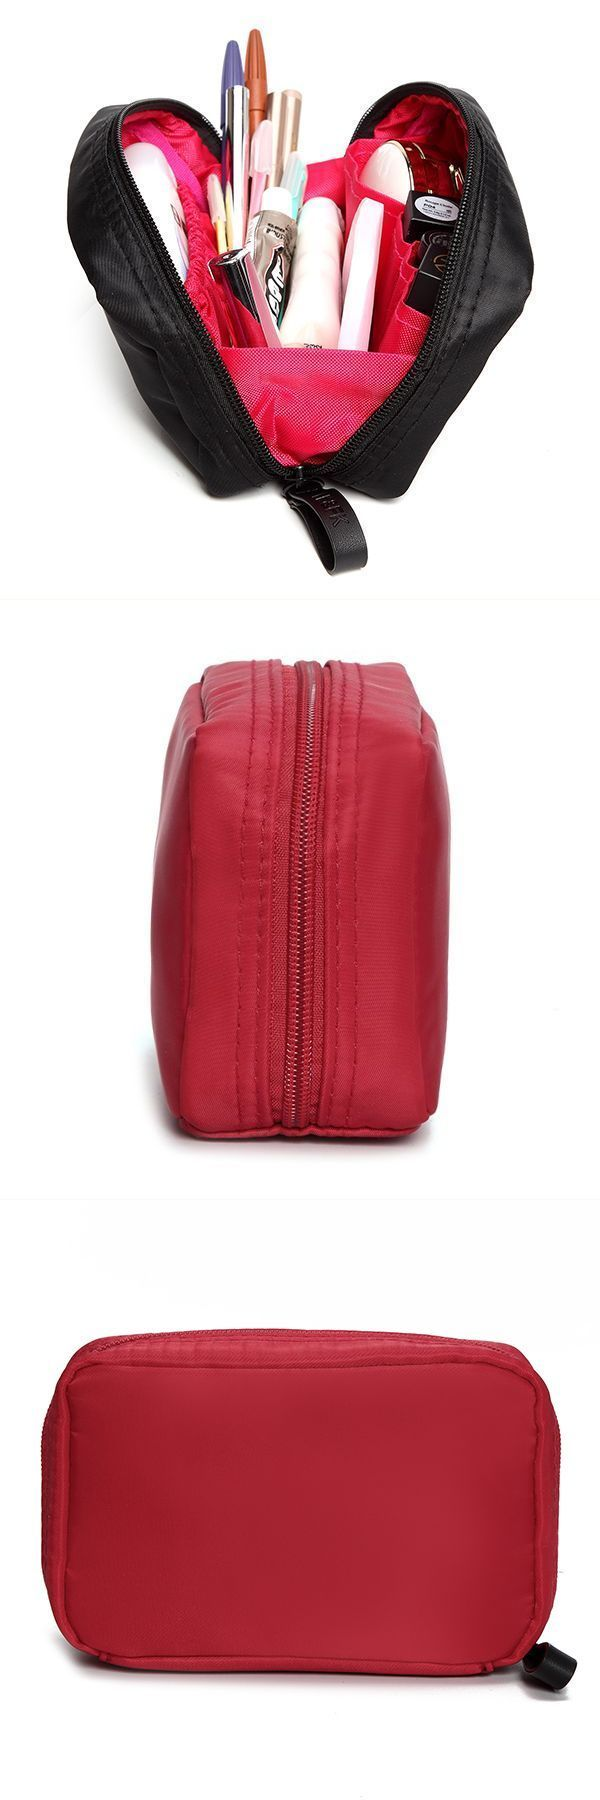 Women Nylon Cosmetic Bag Outdoor Portable Little Travel Storage J Crew Clutch Bags India Lipsy Kmart L V